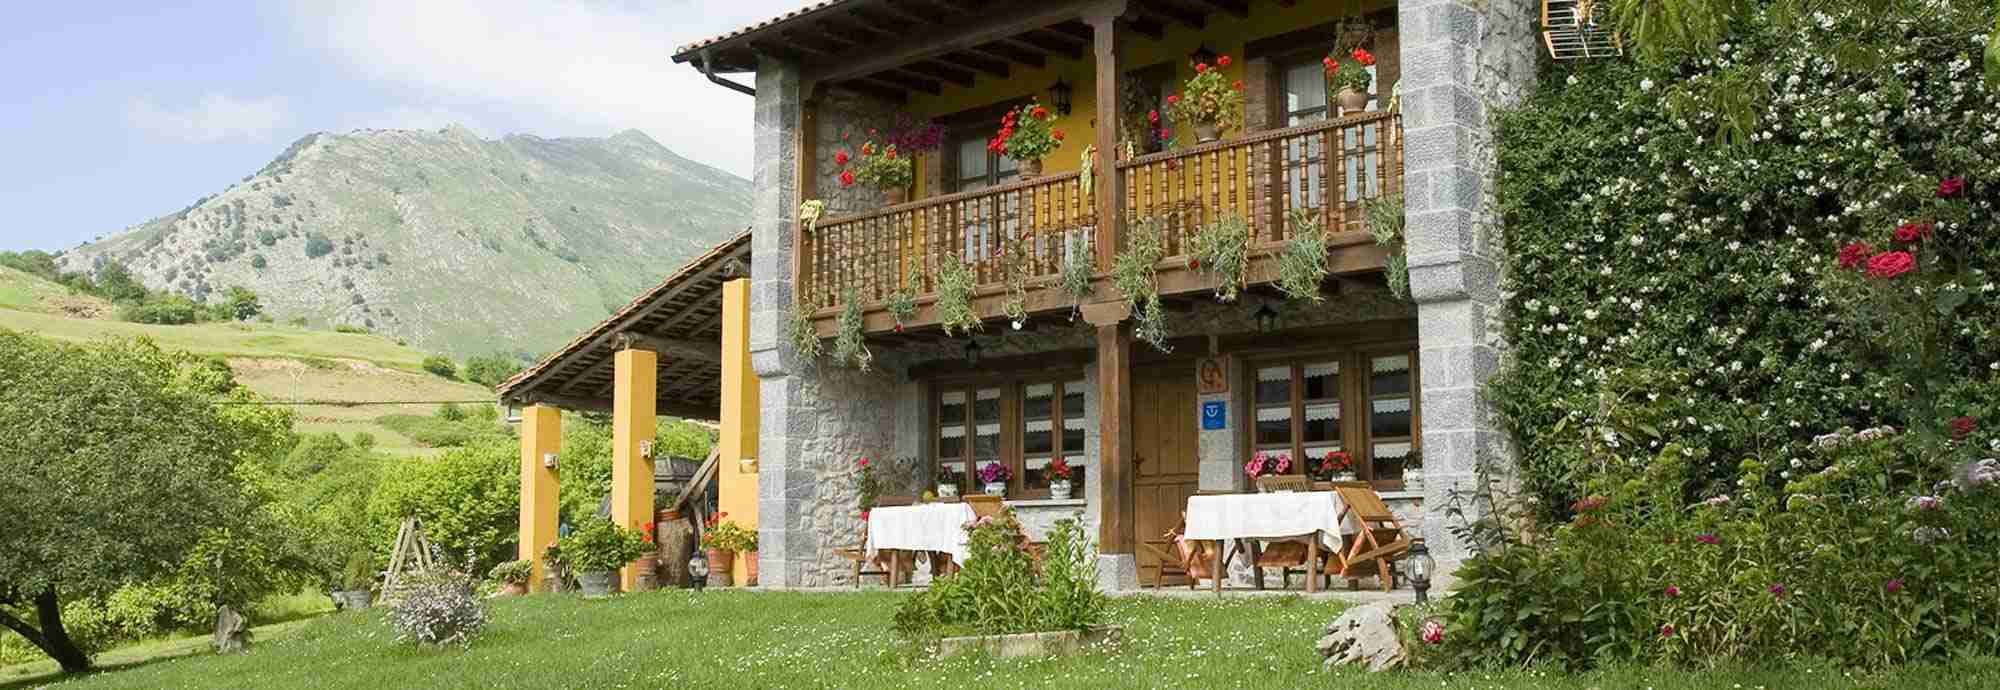 Exquisite Asturias cottage with mountain views 15 mins from beaches